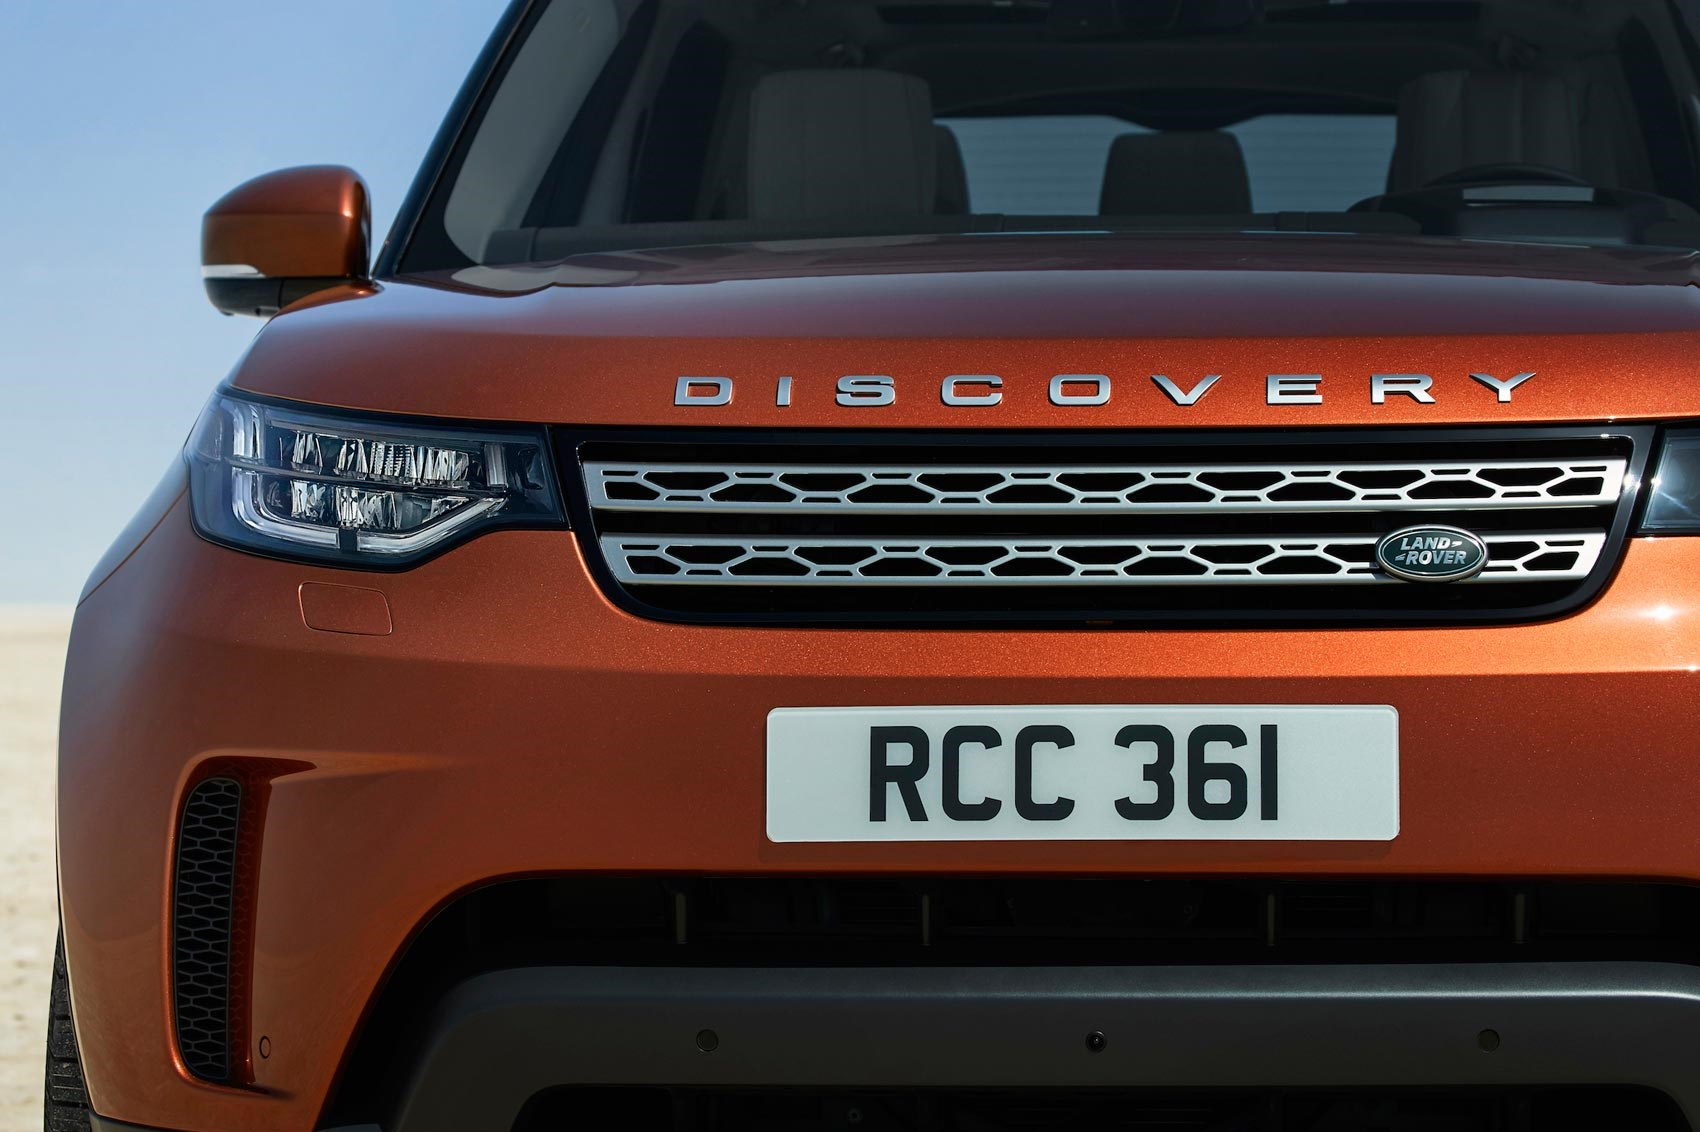 hitch review land landrover rover sport car phoenix discovery